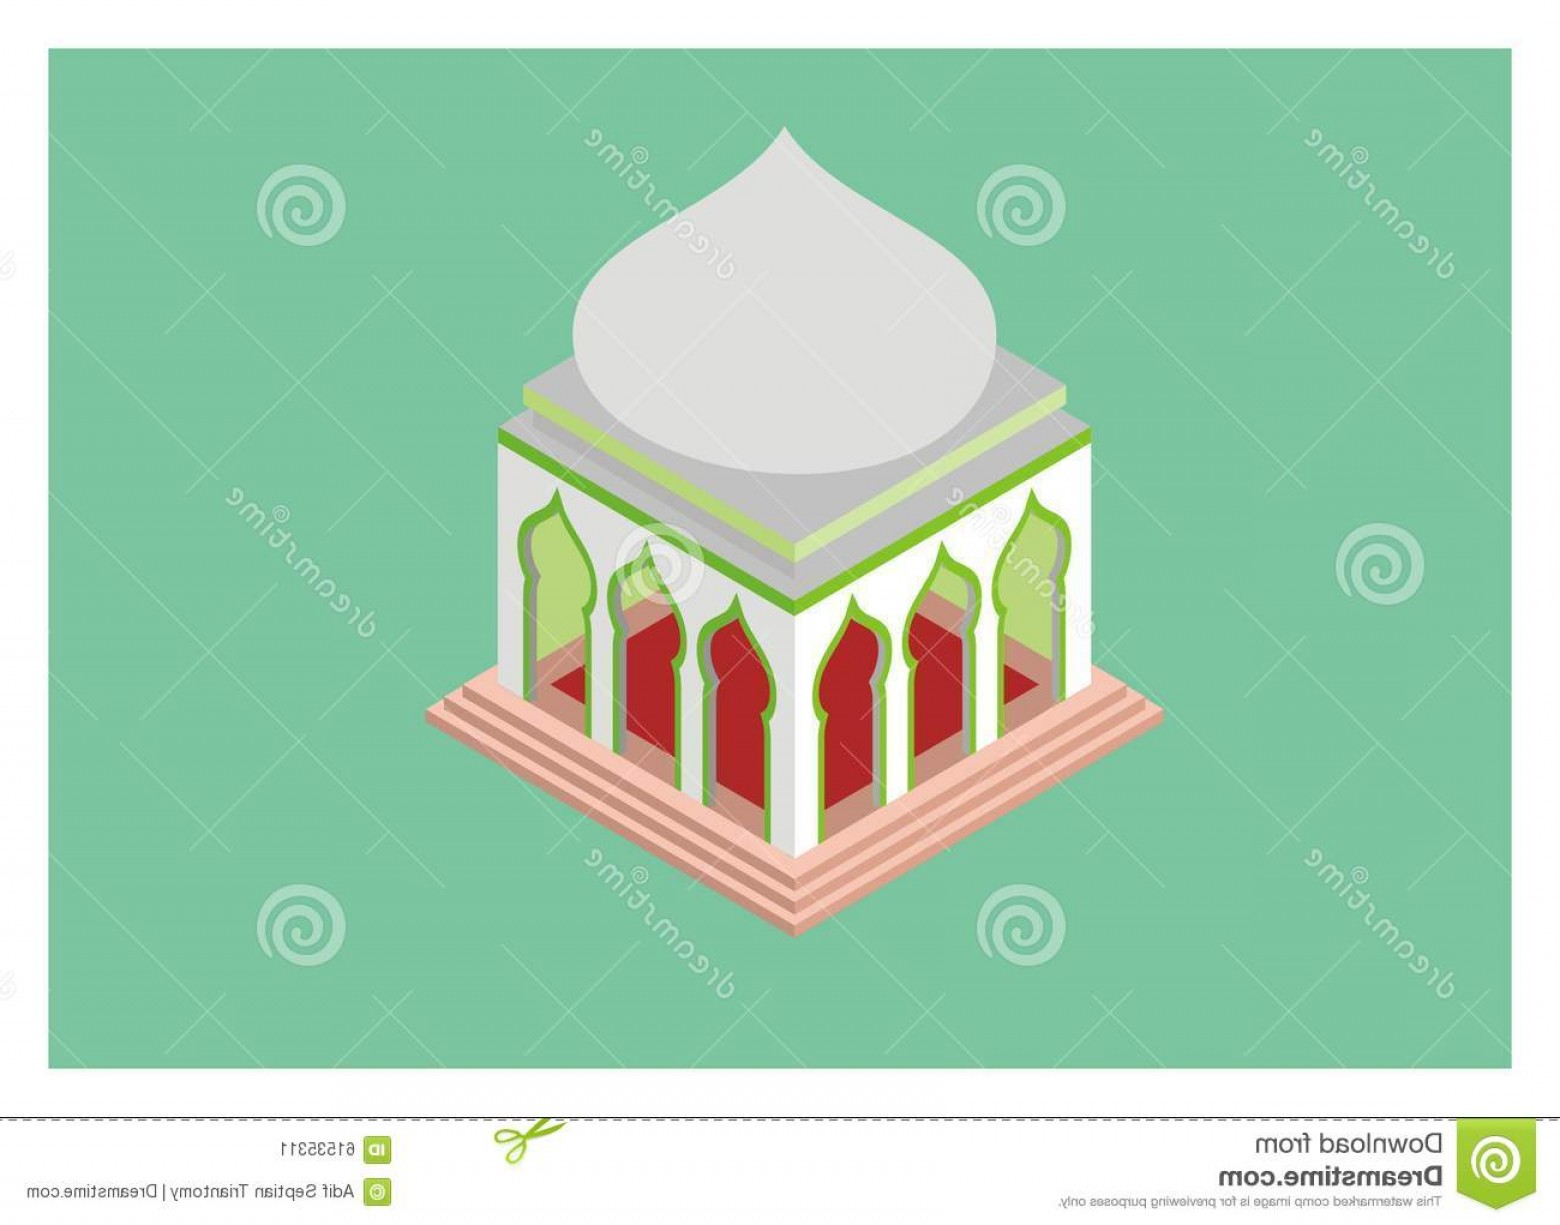 Mosque Vector Map: Stock Illustration Isometric Mosque Simple Illustration View Image